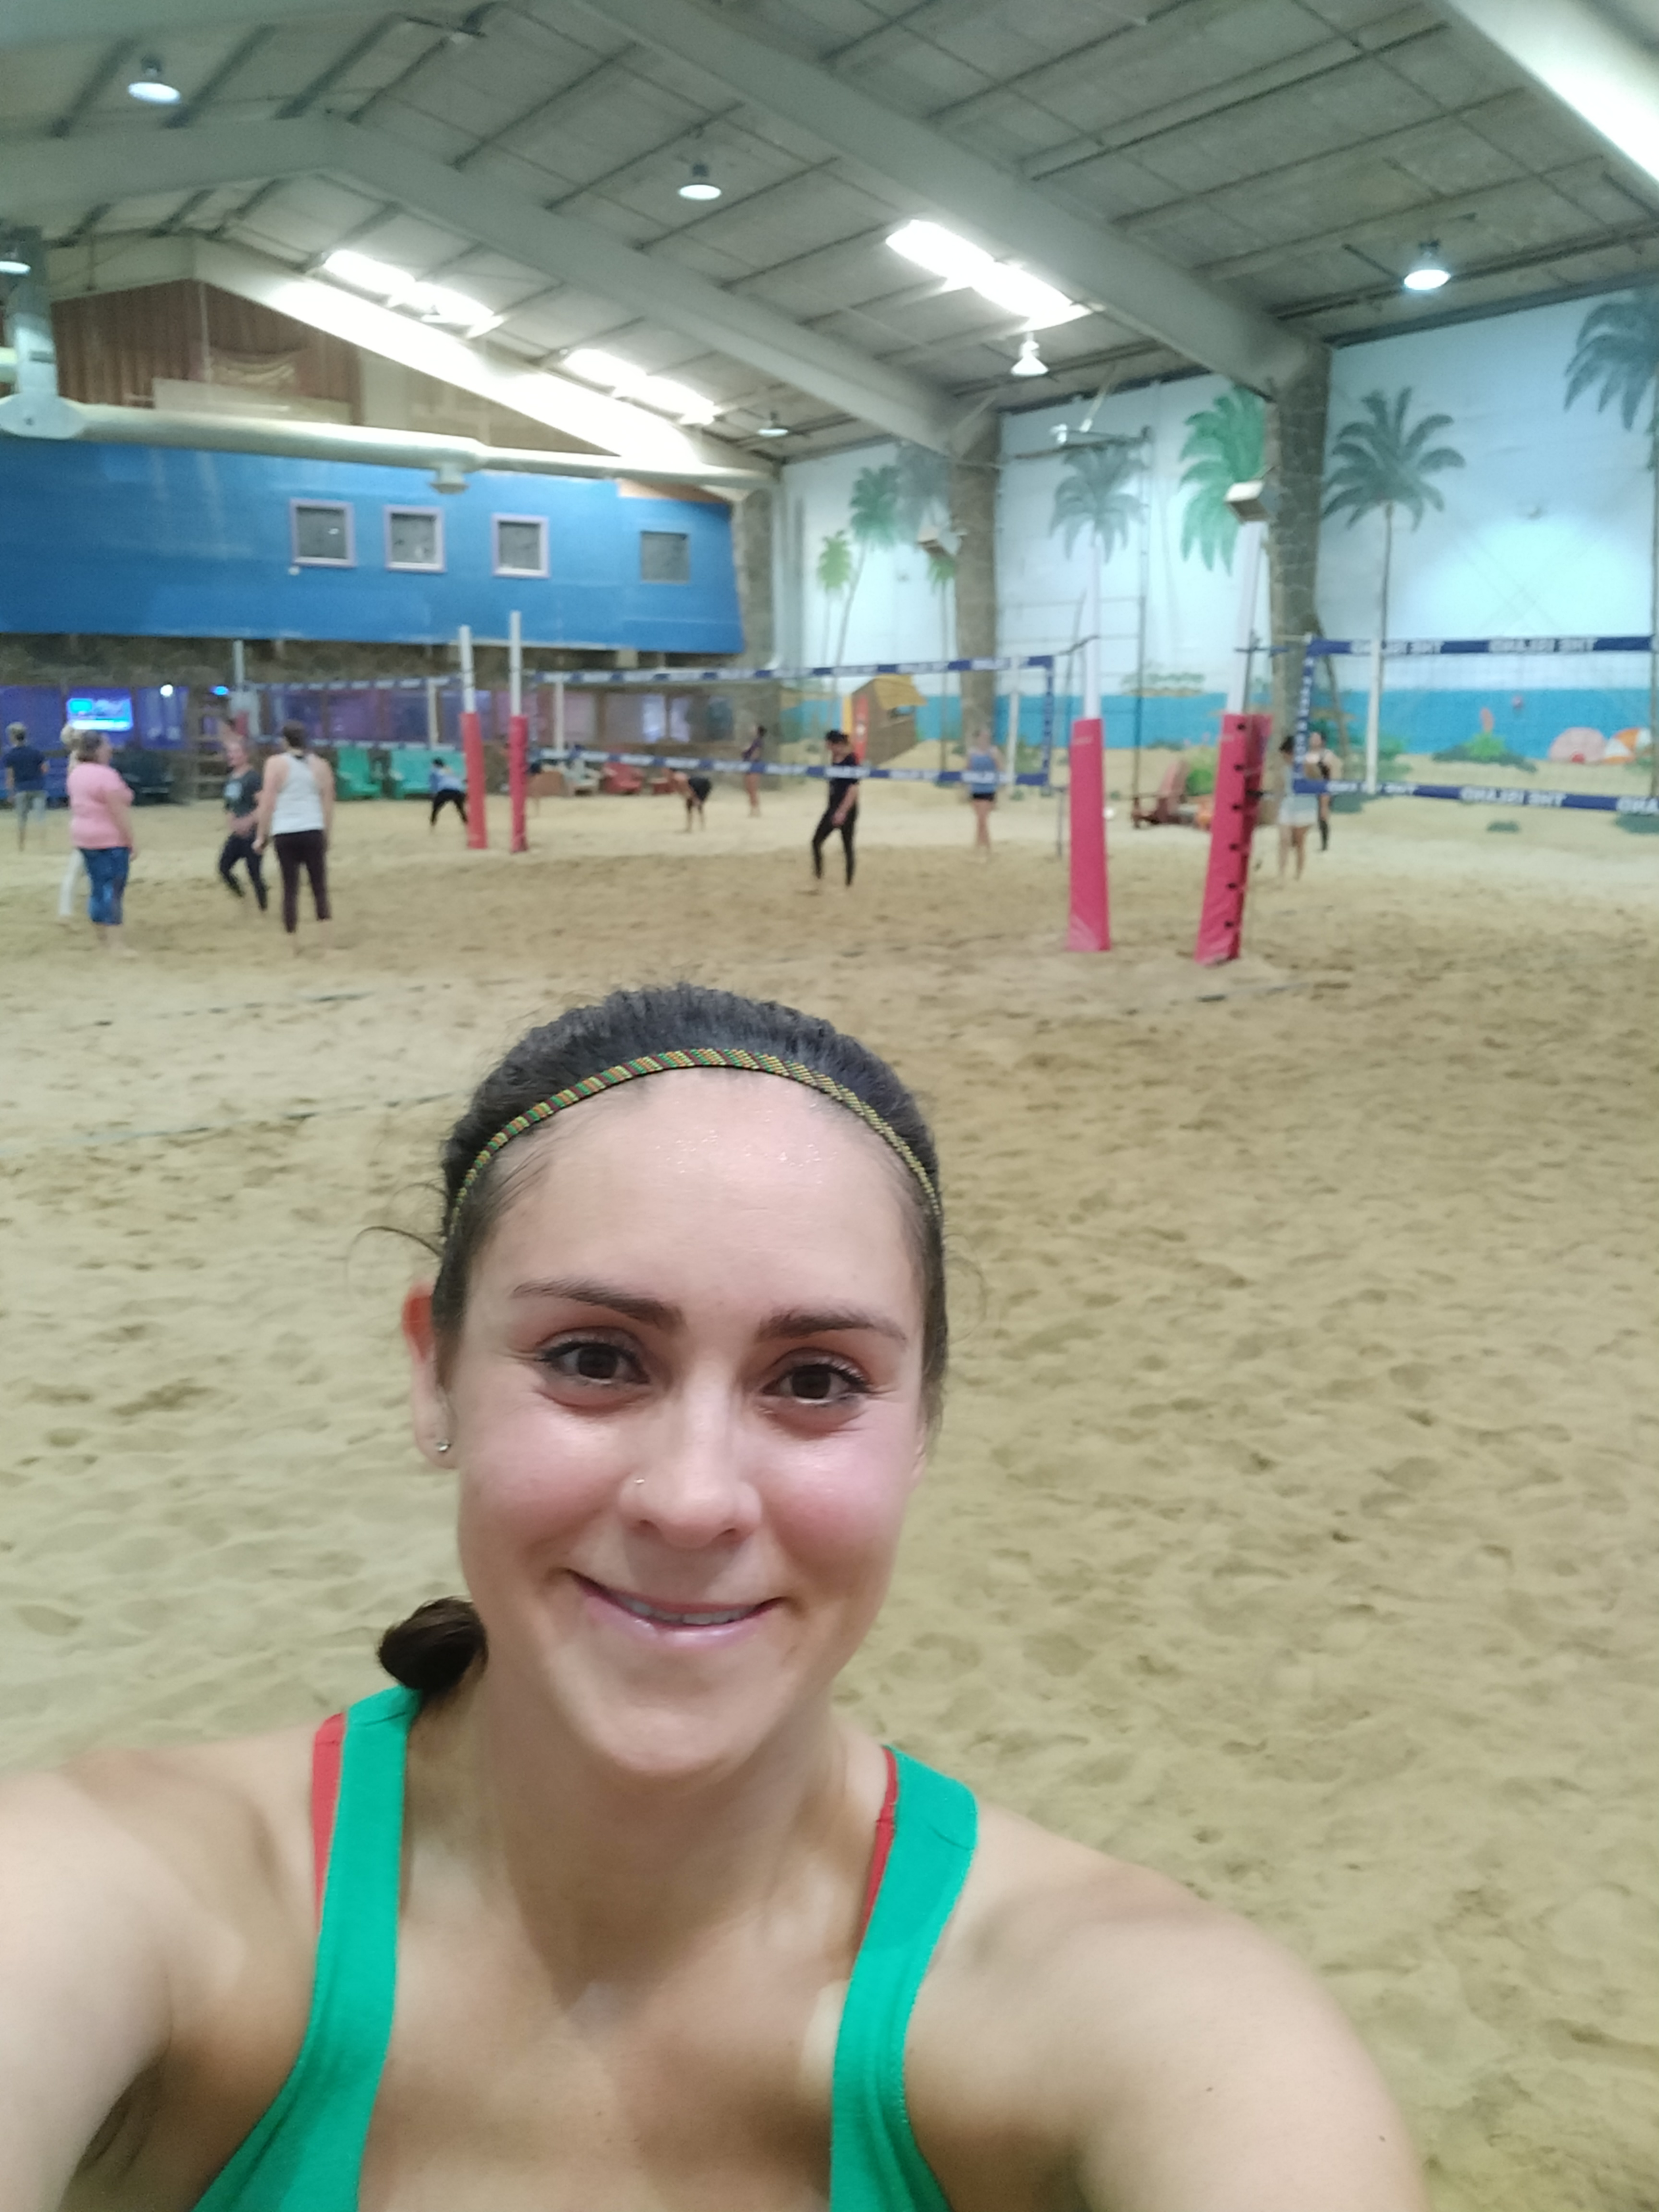 Sweaty person playing indoor beach volleyball.